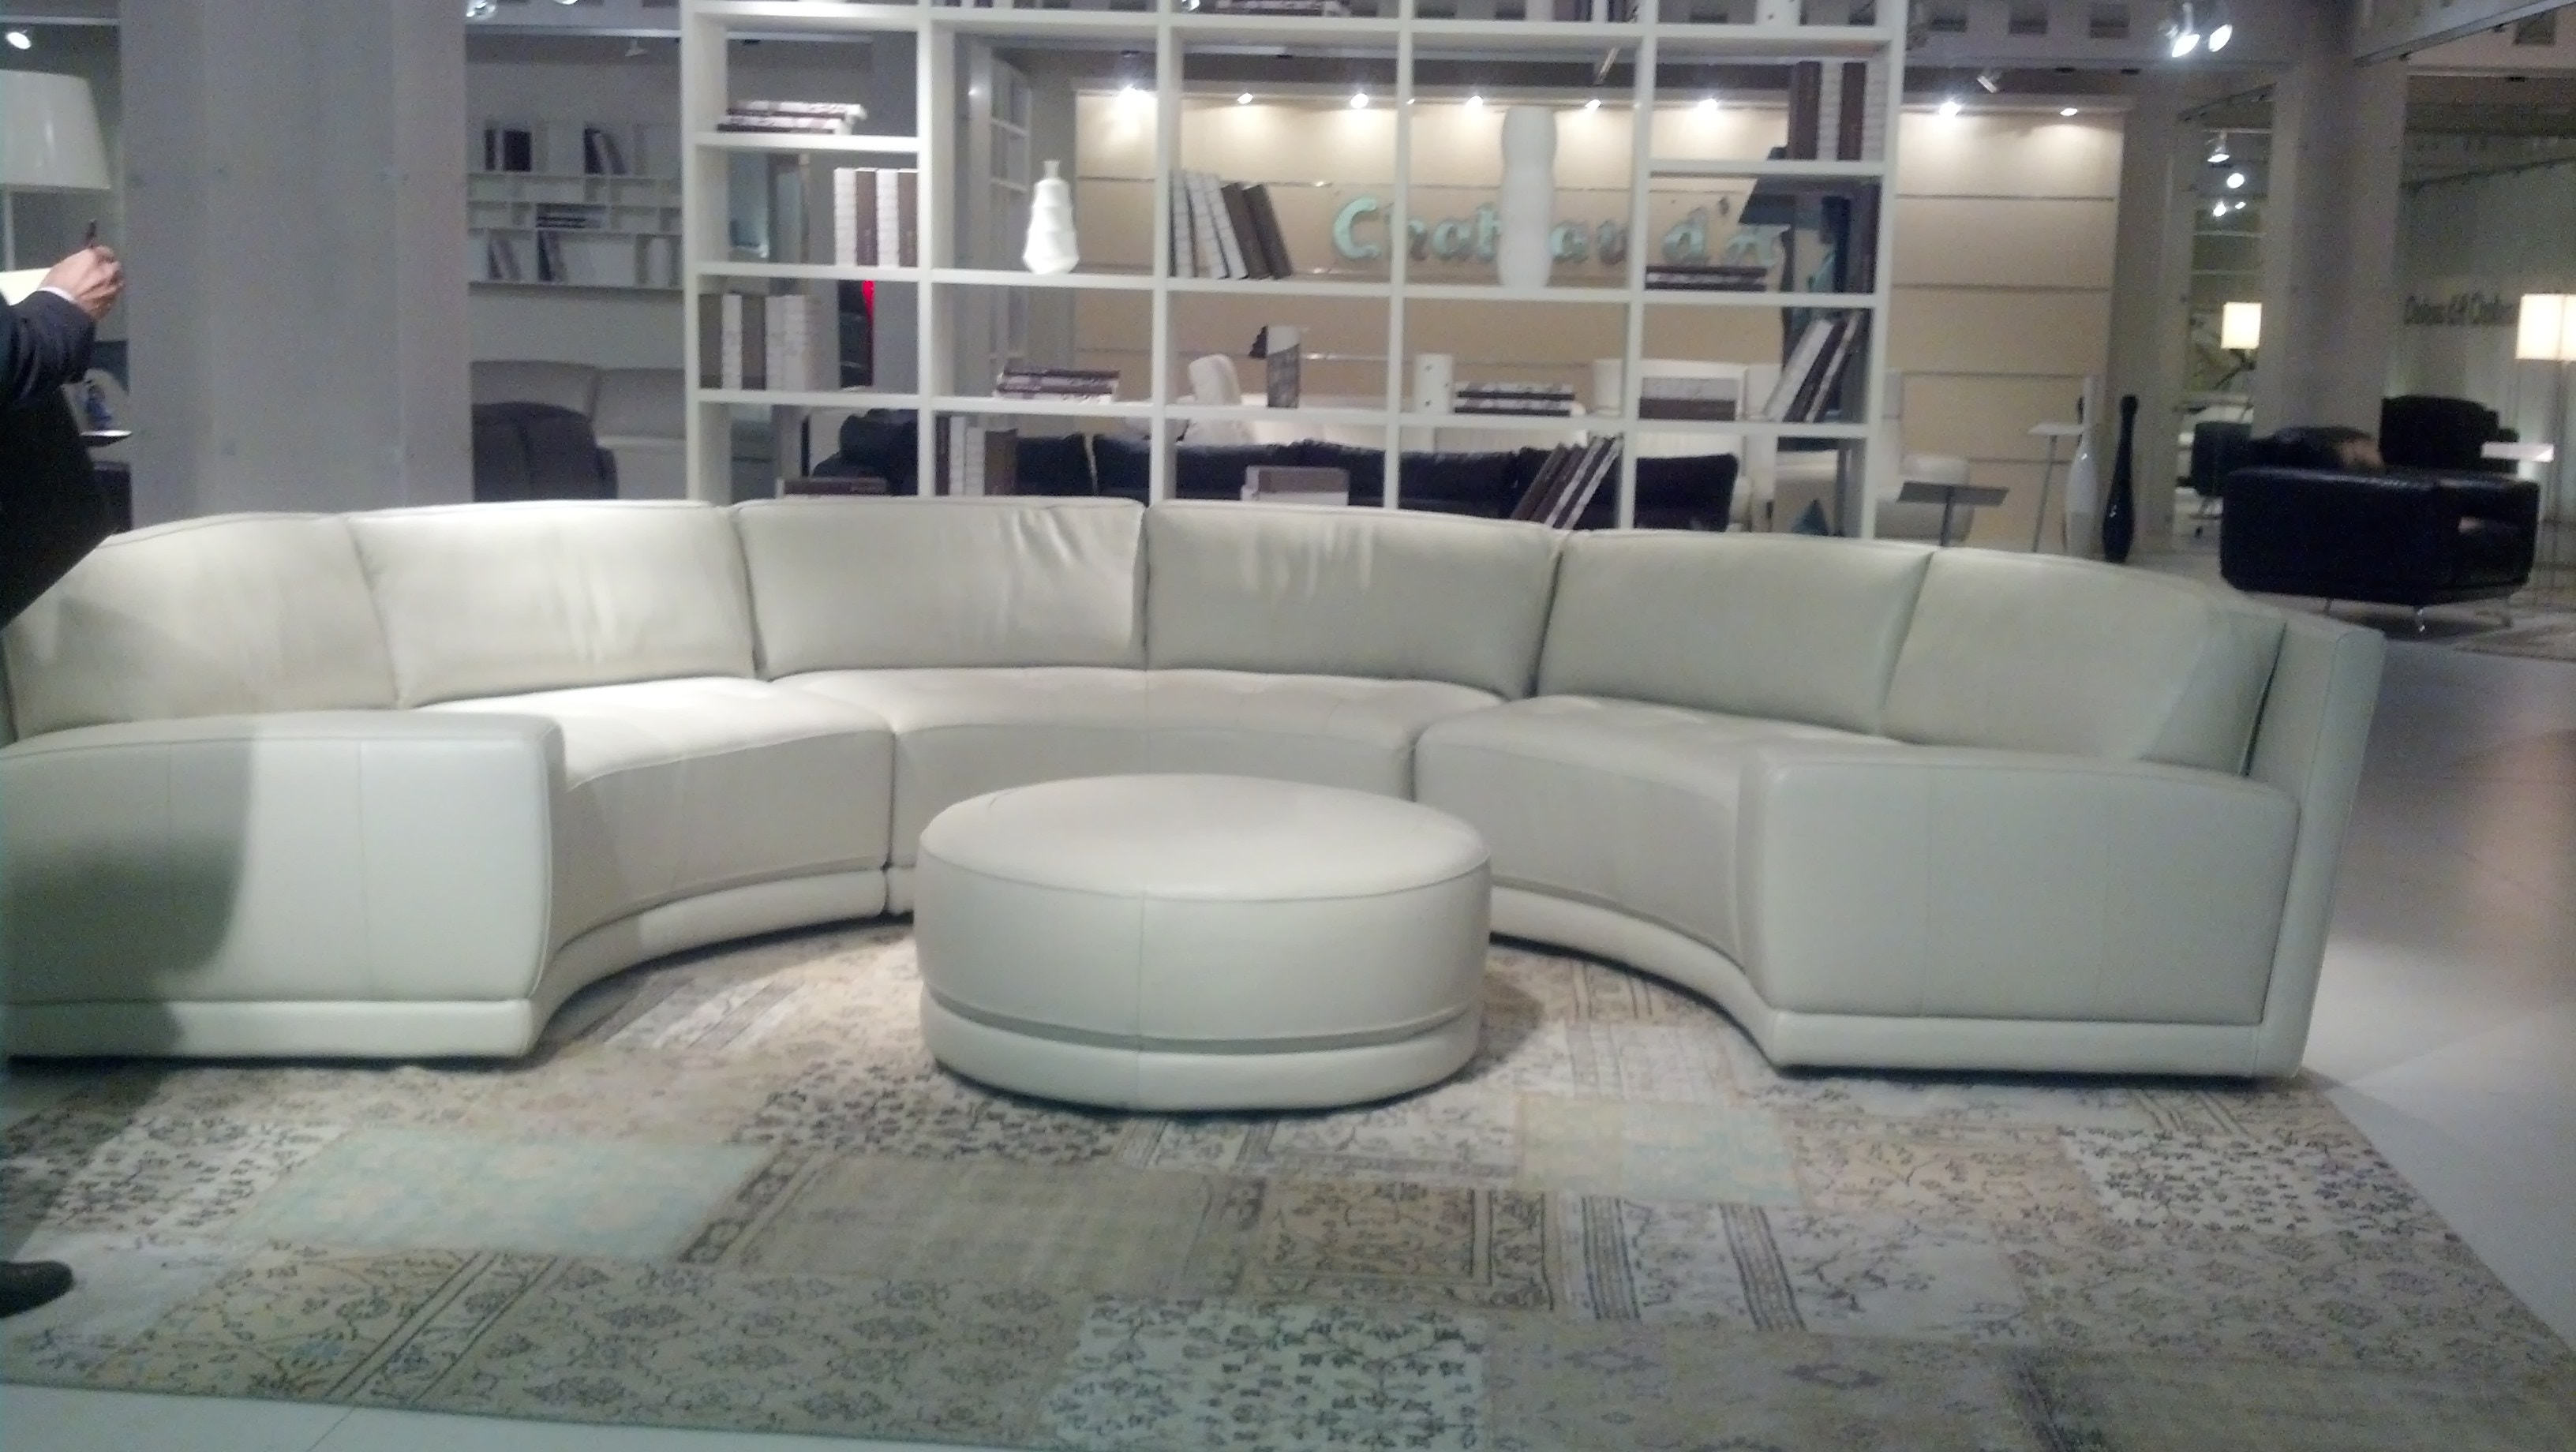 Chateau Du0027ax Living Room Sleek Curved Italian Leather Sectional. U807 At  Hamilton Sofa U0026 Leather Gallery